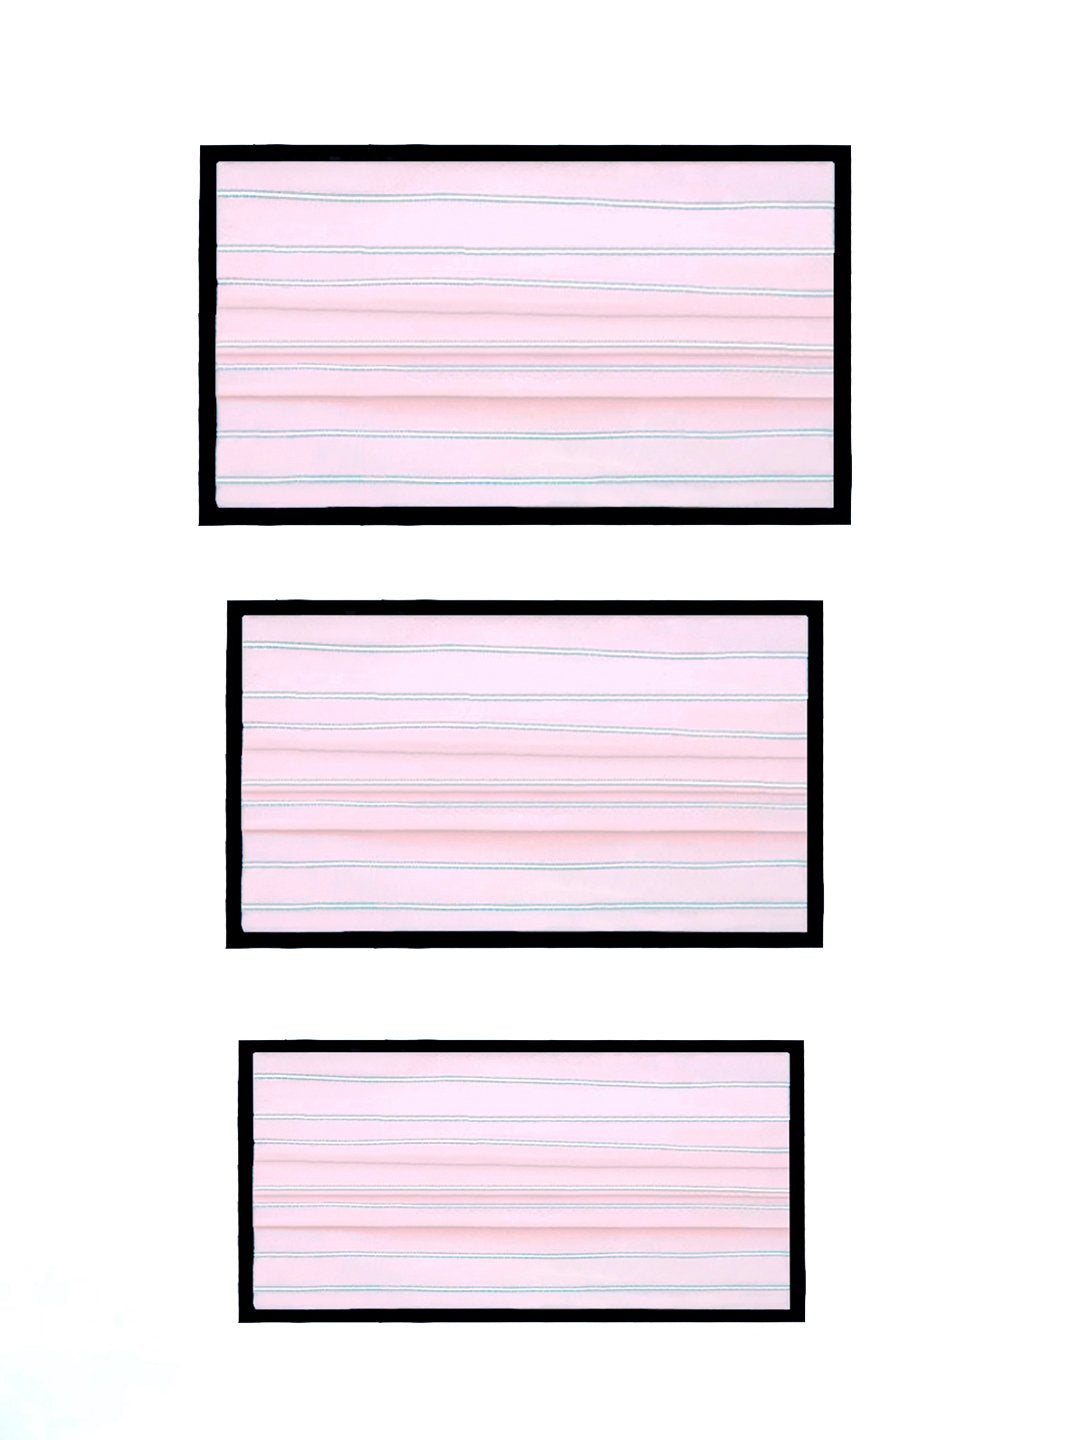 Breathable Double-Layer Supima Cotton Fabric, Pleated Face Mask - Pink/White Stripes with Black Binding Edges. Large, Medium, Small Sizes.